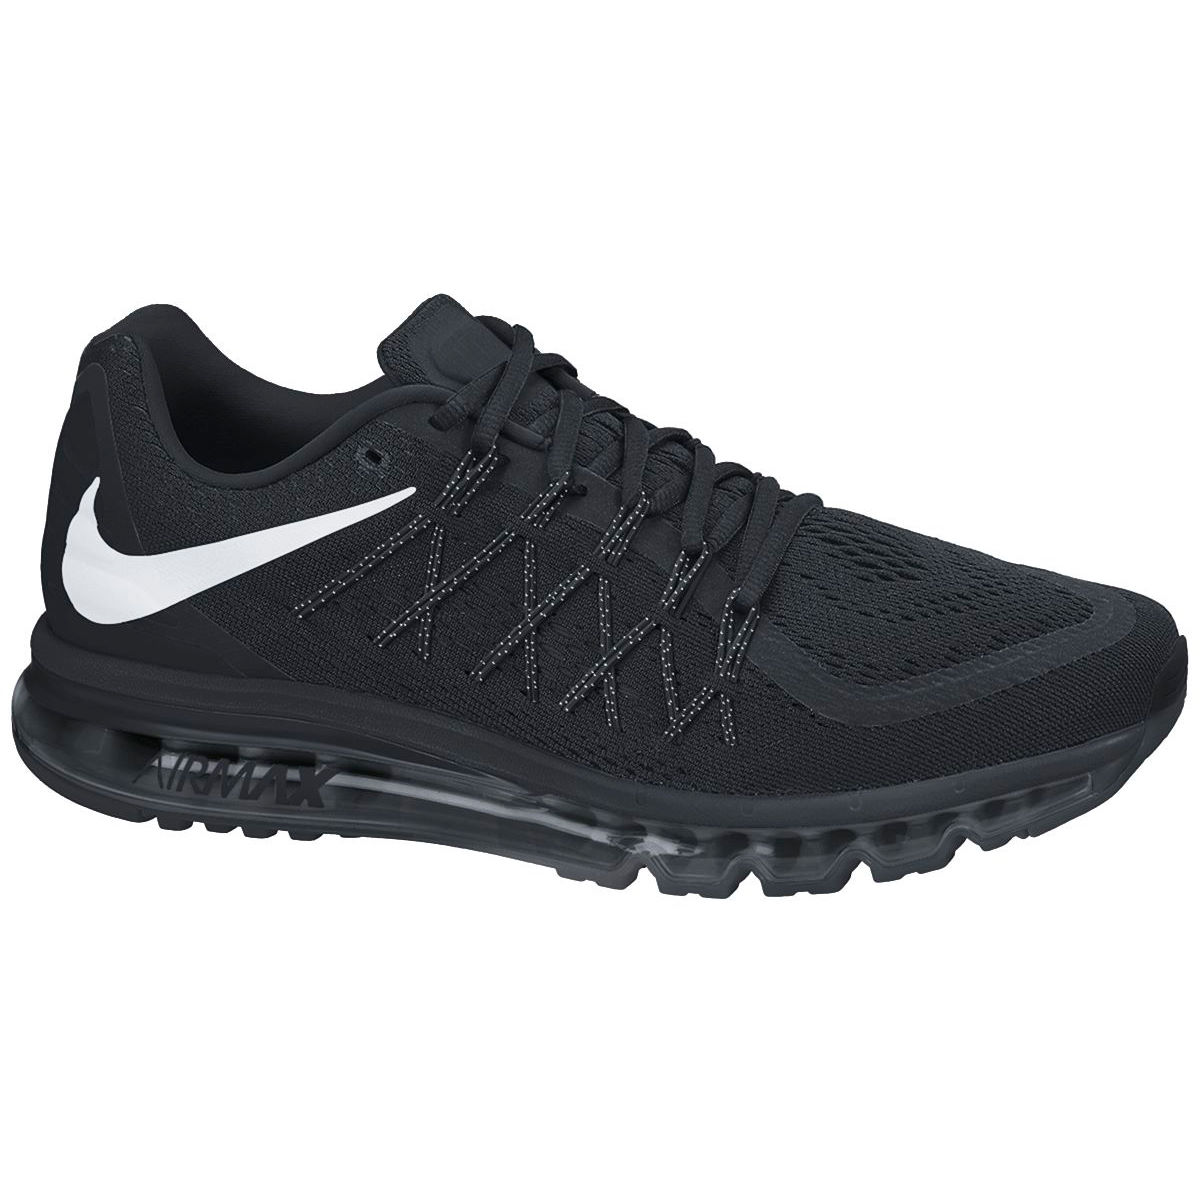 wiggle nike air max 2015 shoes su15 cushion running shoes. Black Bedroom Furniture Sets. Home Design Ideas